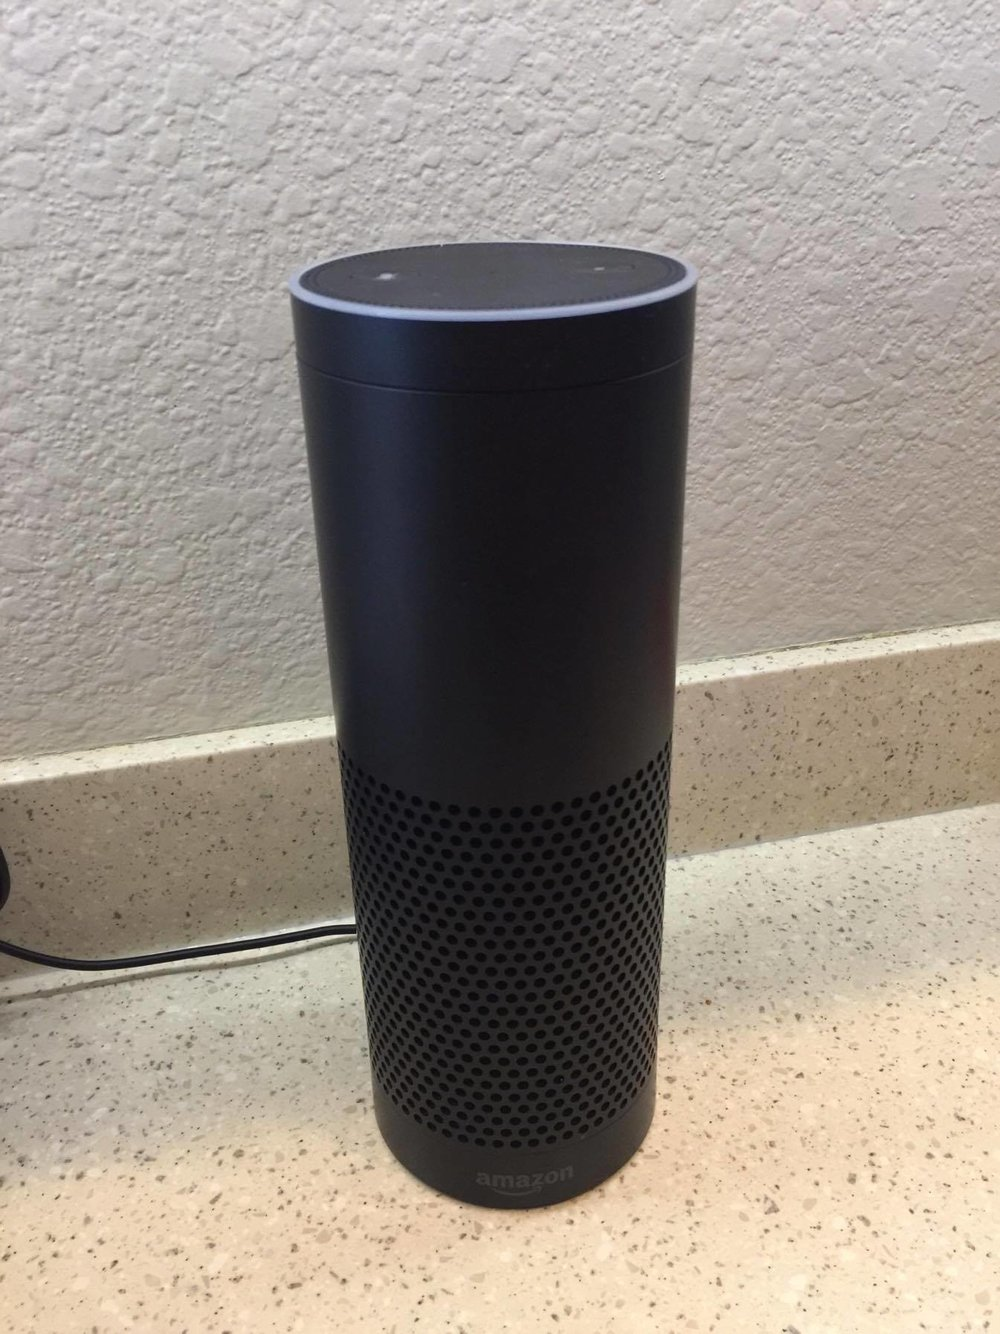 Amazon Echo - Increase independence for people with disabilities. Personal image.